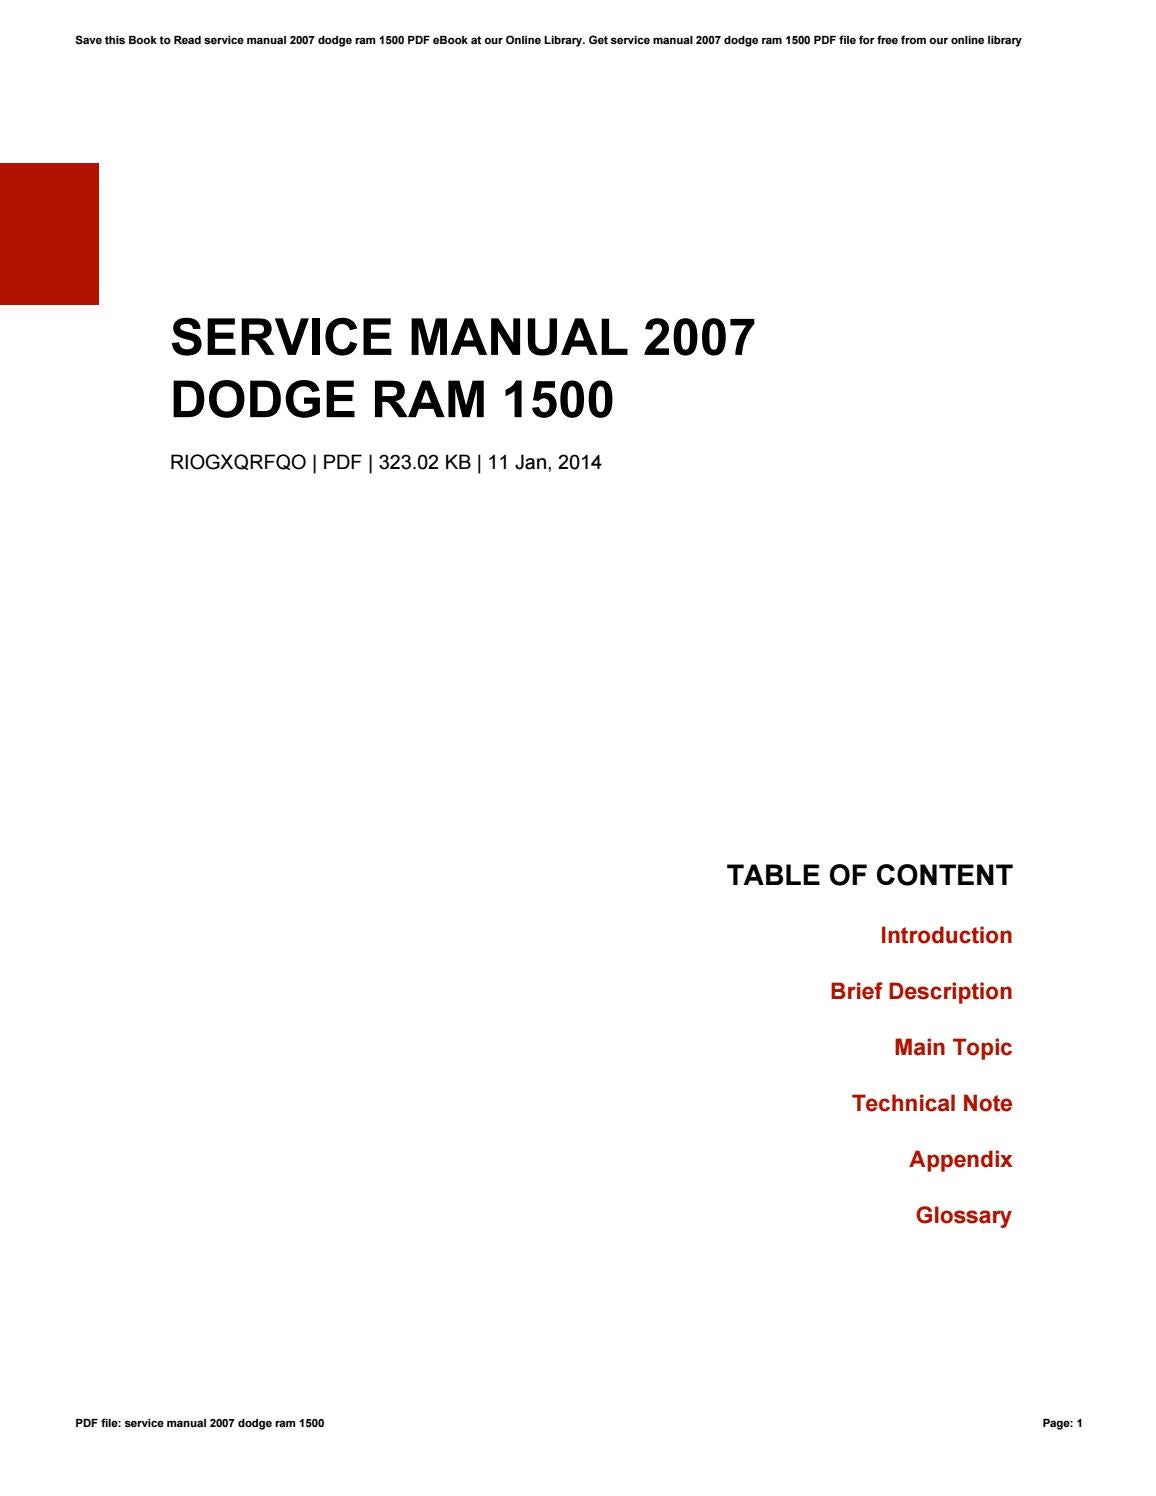 service manual service and repair manuals 2007 dodge ram. Black Bedroom Furniture Sets. Home Design Ideas